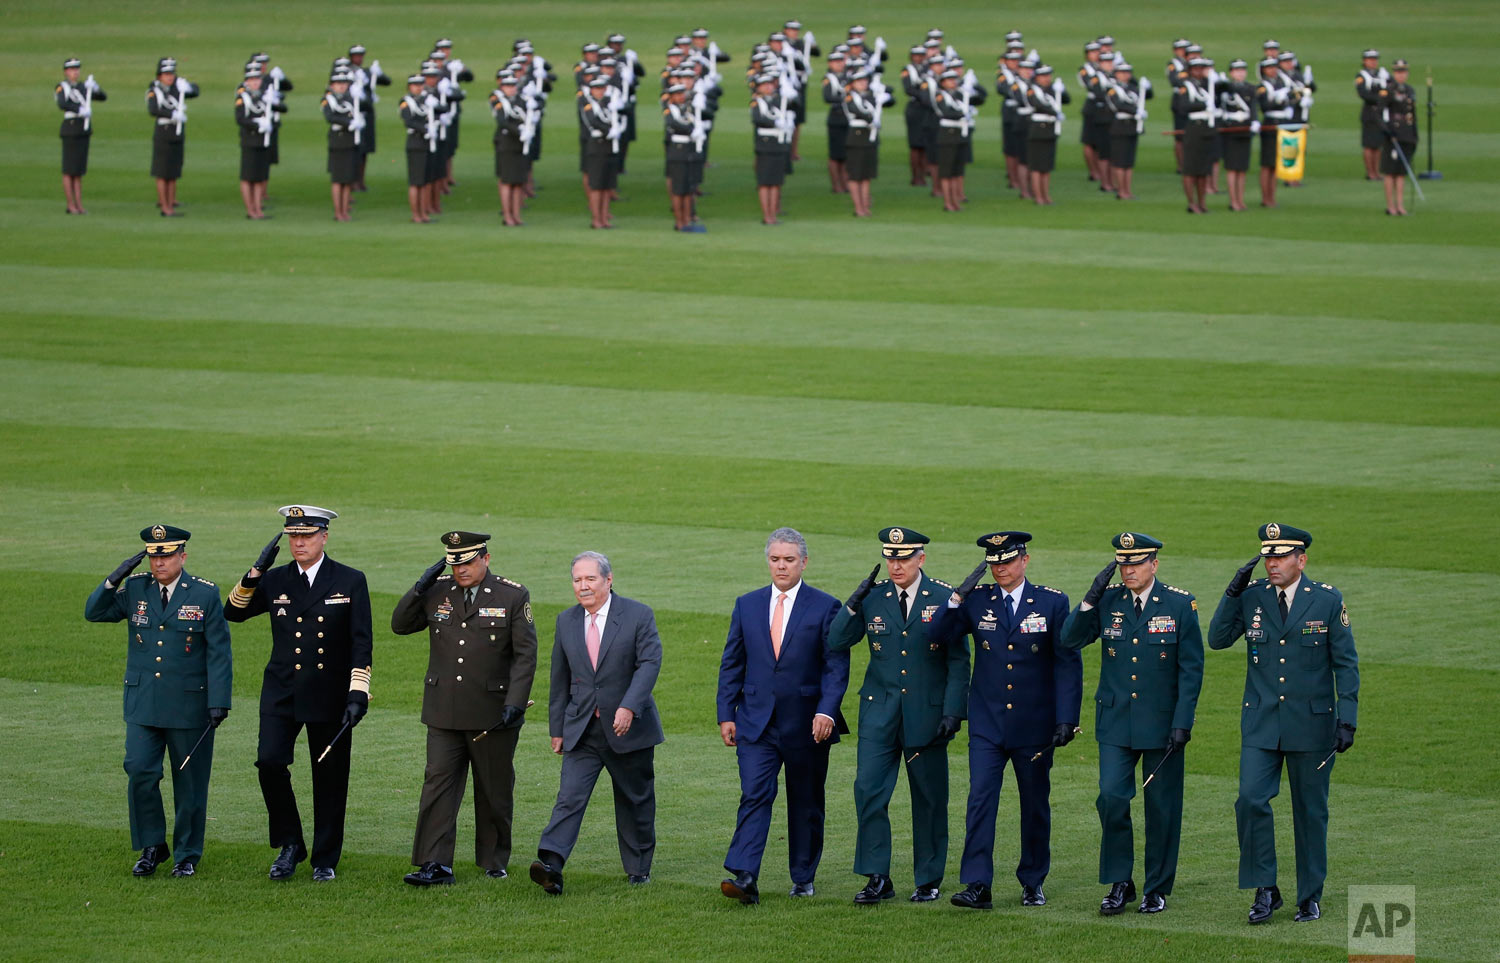 Colombia's President Ivan Duque, fifth from left, walks with his new Defense Minister Guillermo Botero, fourth from left, as they review troops with military officials during a ceremony in Bogota, Colombia, Aug. 14, 2018. At the ceremony, Botero formally took command of the armed forces. (AP Photo/Fernando Vergara)